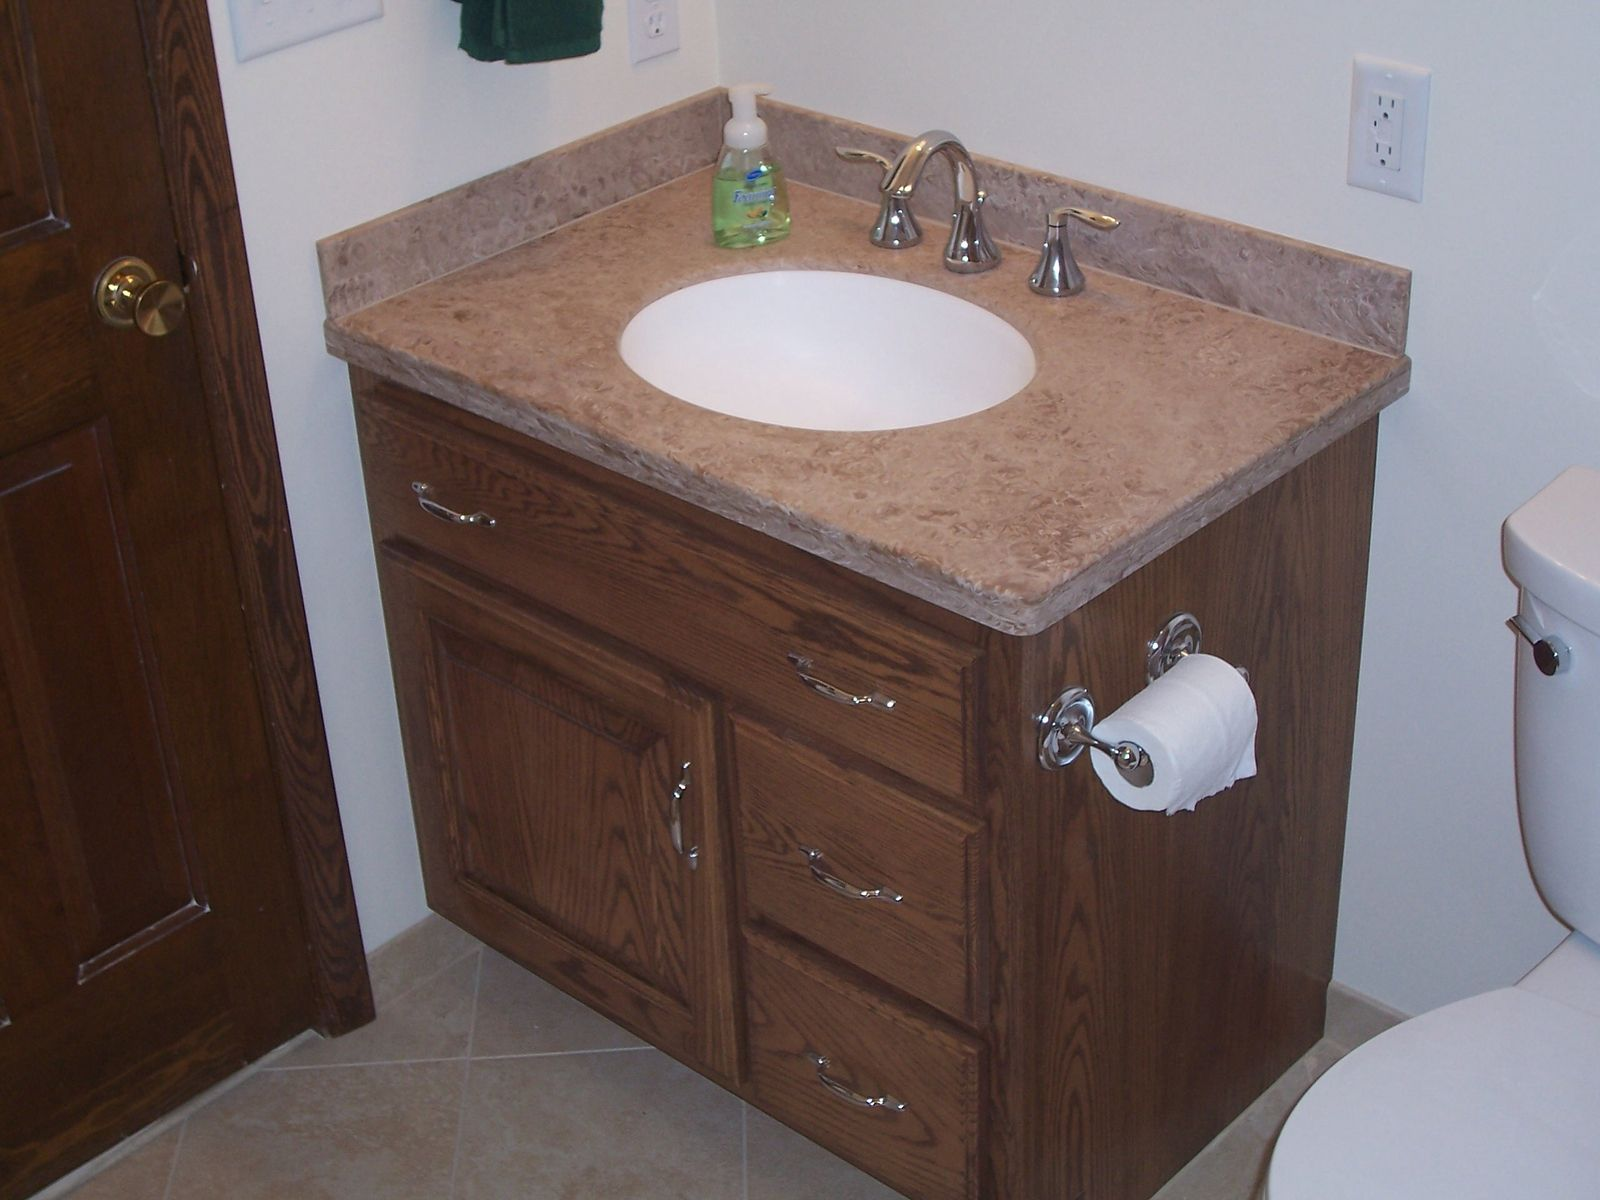 handmade custom oak bathroom vanity and linen cabinet by jeffrey